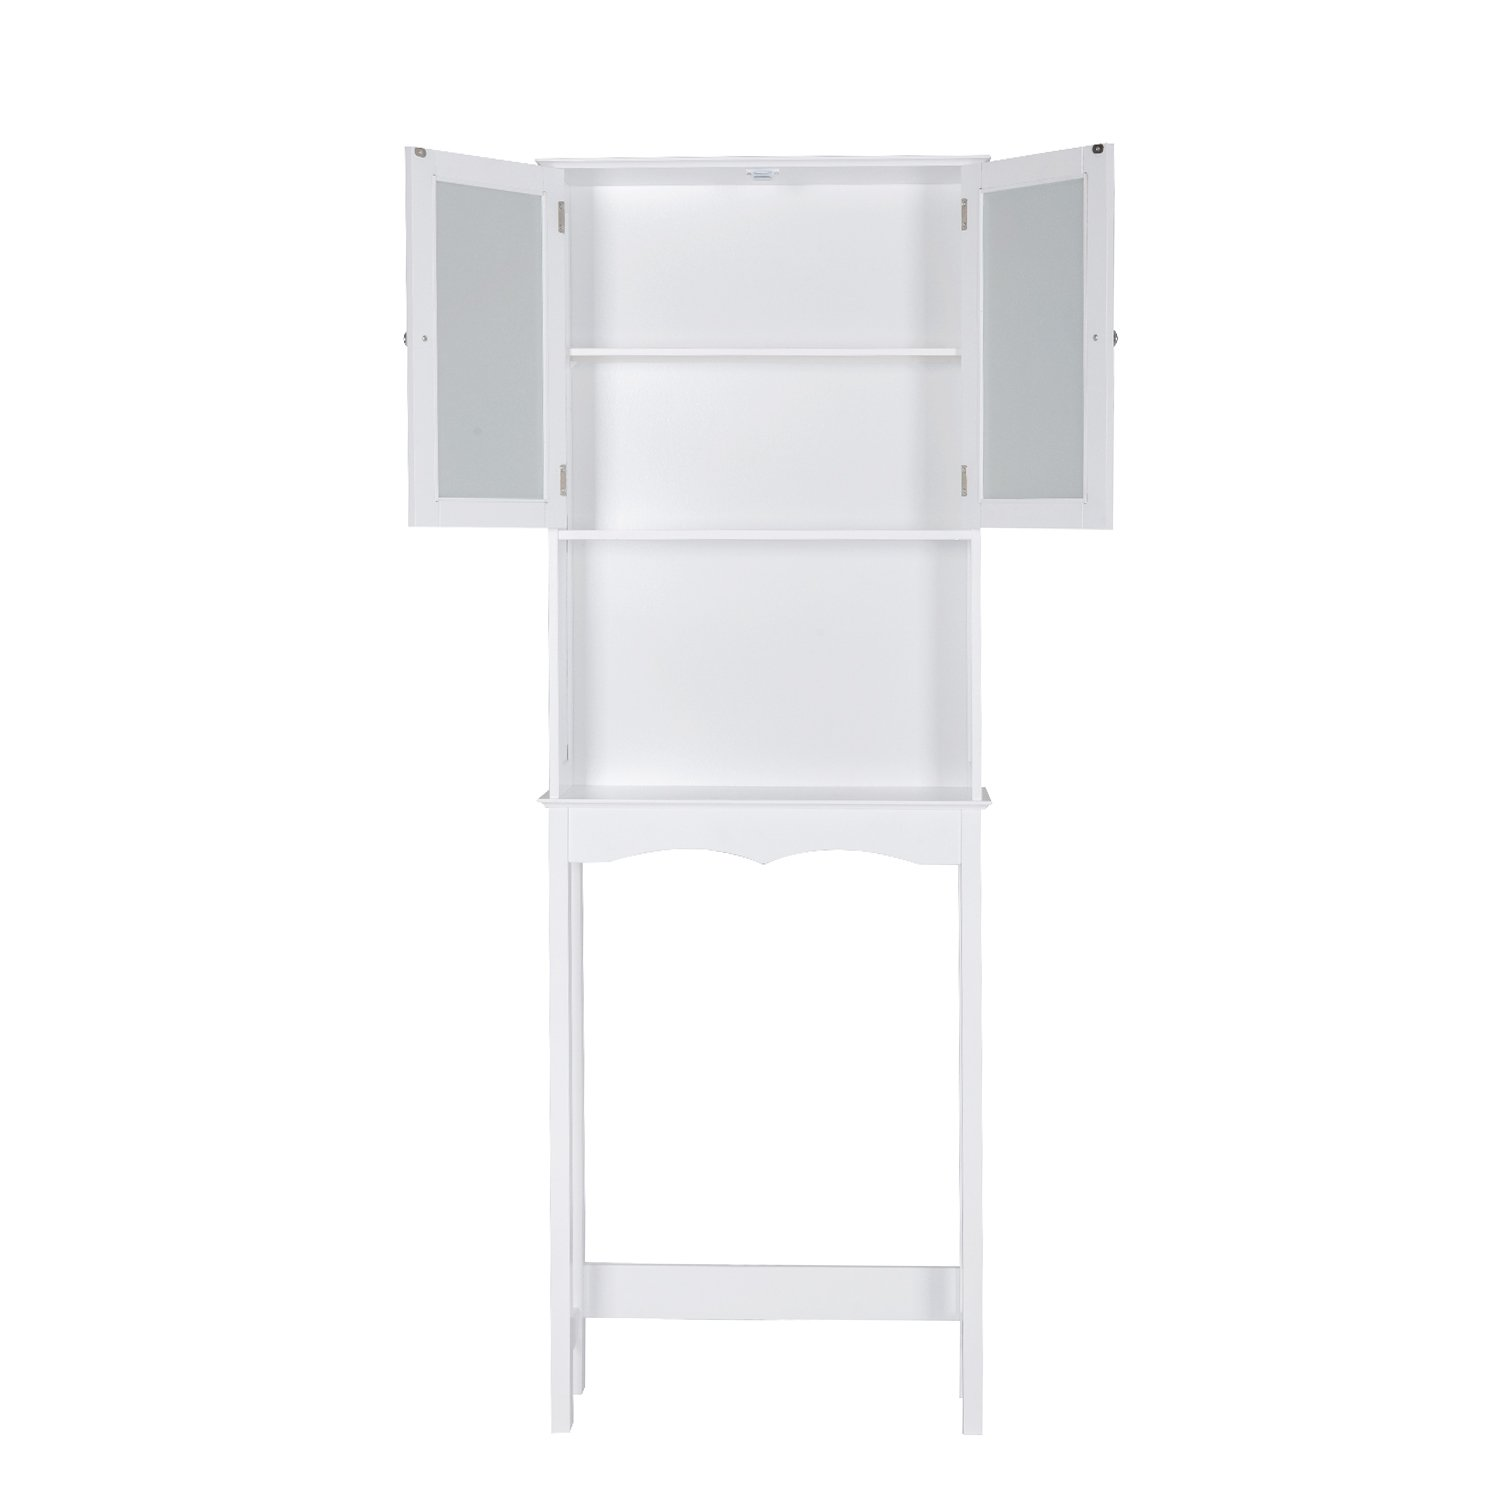 Peachtree Press Inc Home Bathroom Shelf Over The Toilet, Space Saver Cabinet,Bathroom Cabinet Organizer with Moru Tempered Glass Door, White by Peachtree Press Inc (Image #7)